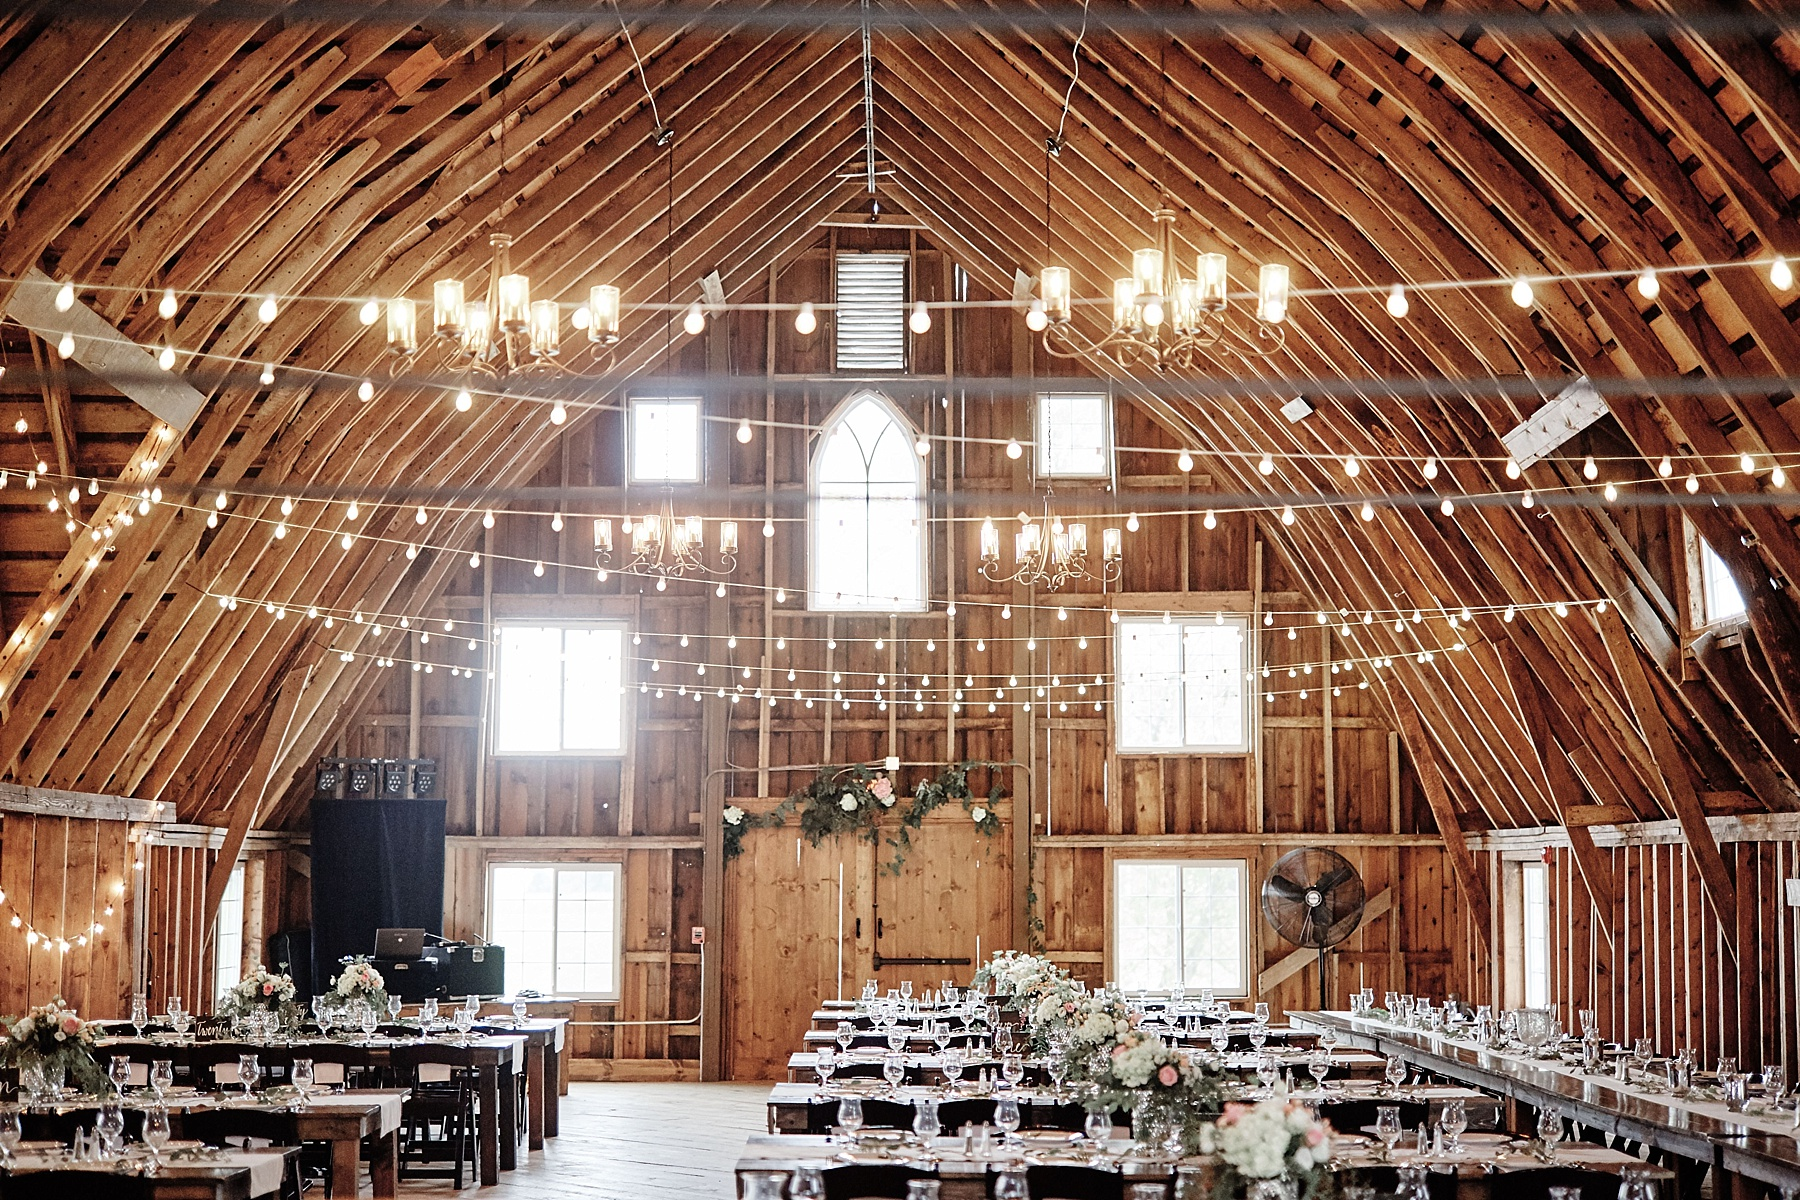 Bloom-Lake-Barn-Wedding-Schafer-Minnesota-Outdoor_0264.jpg